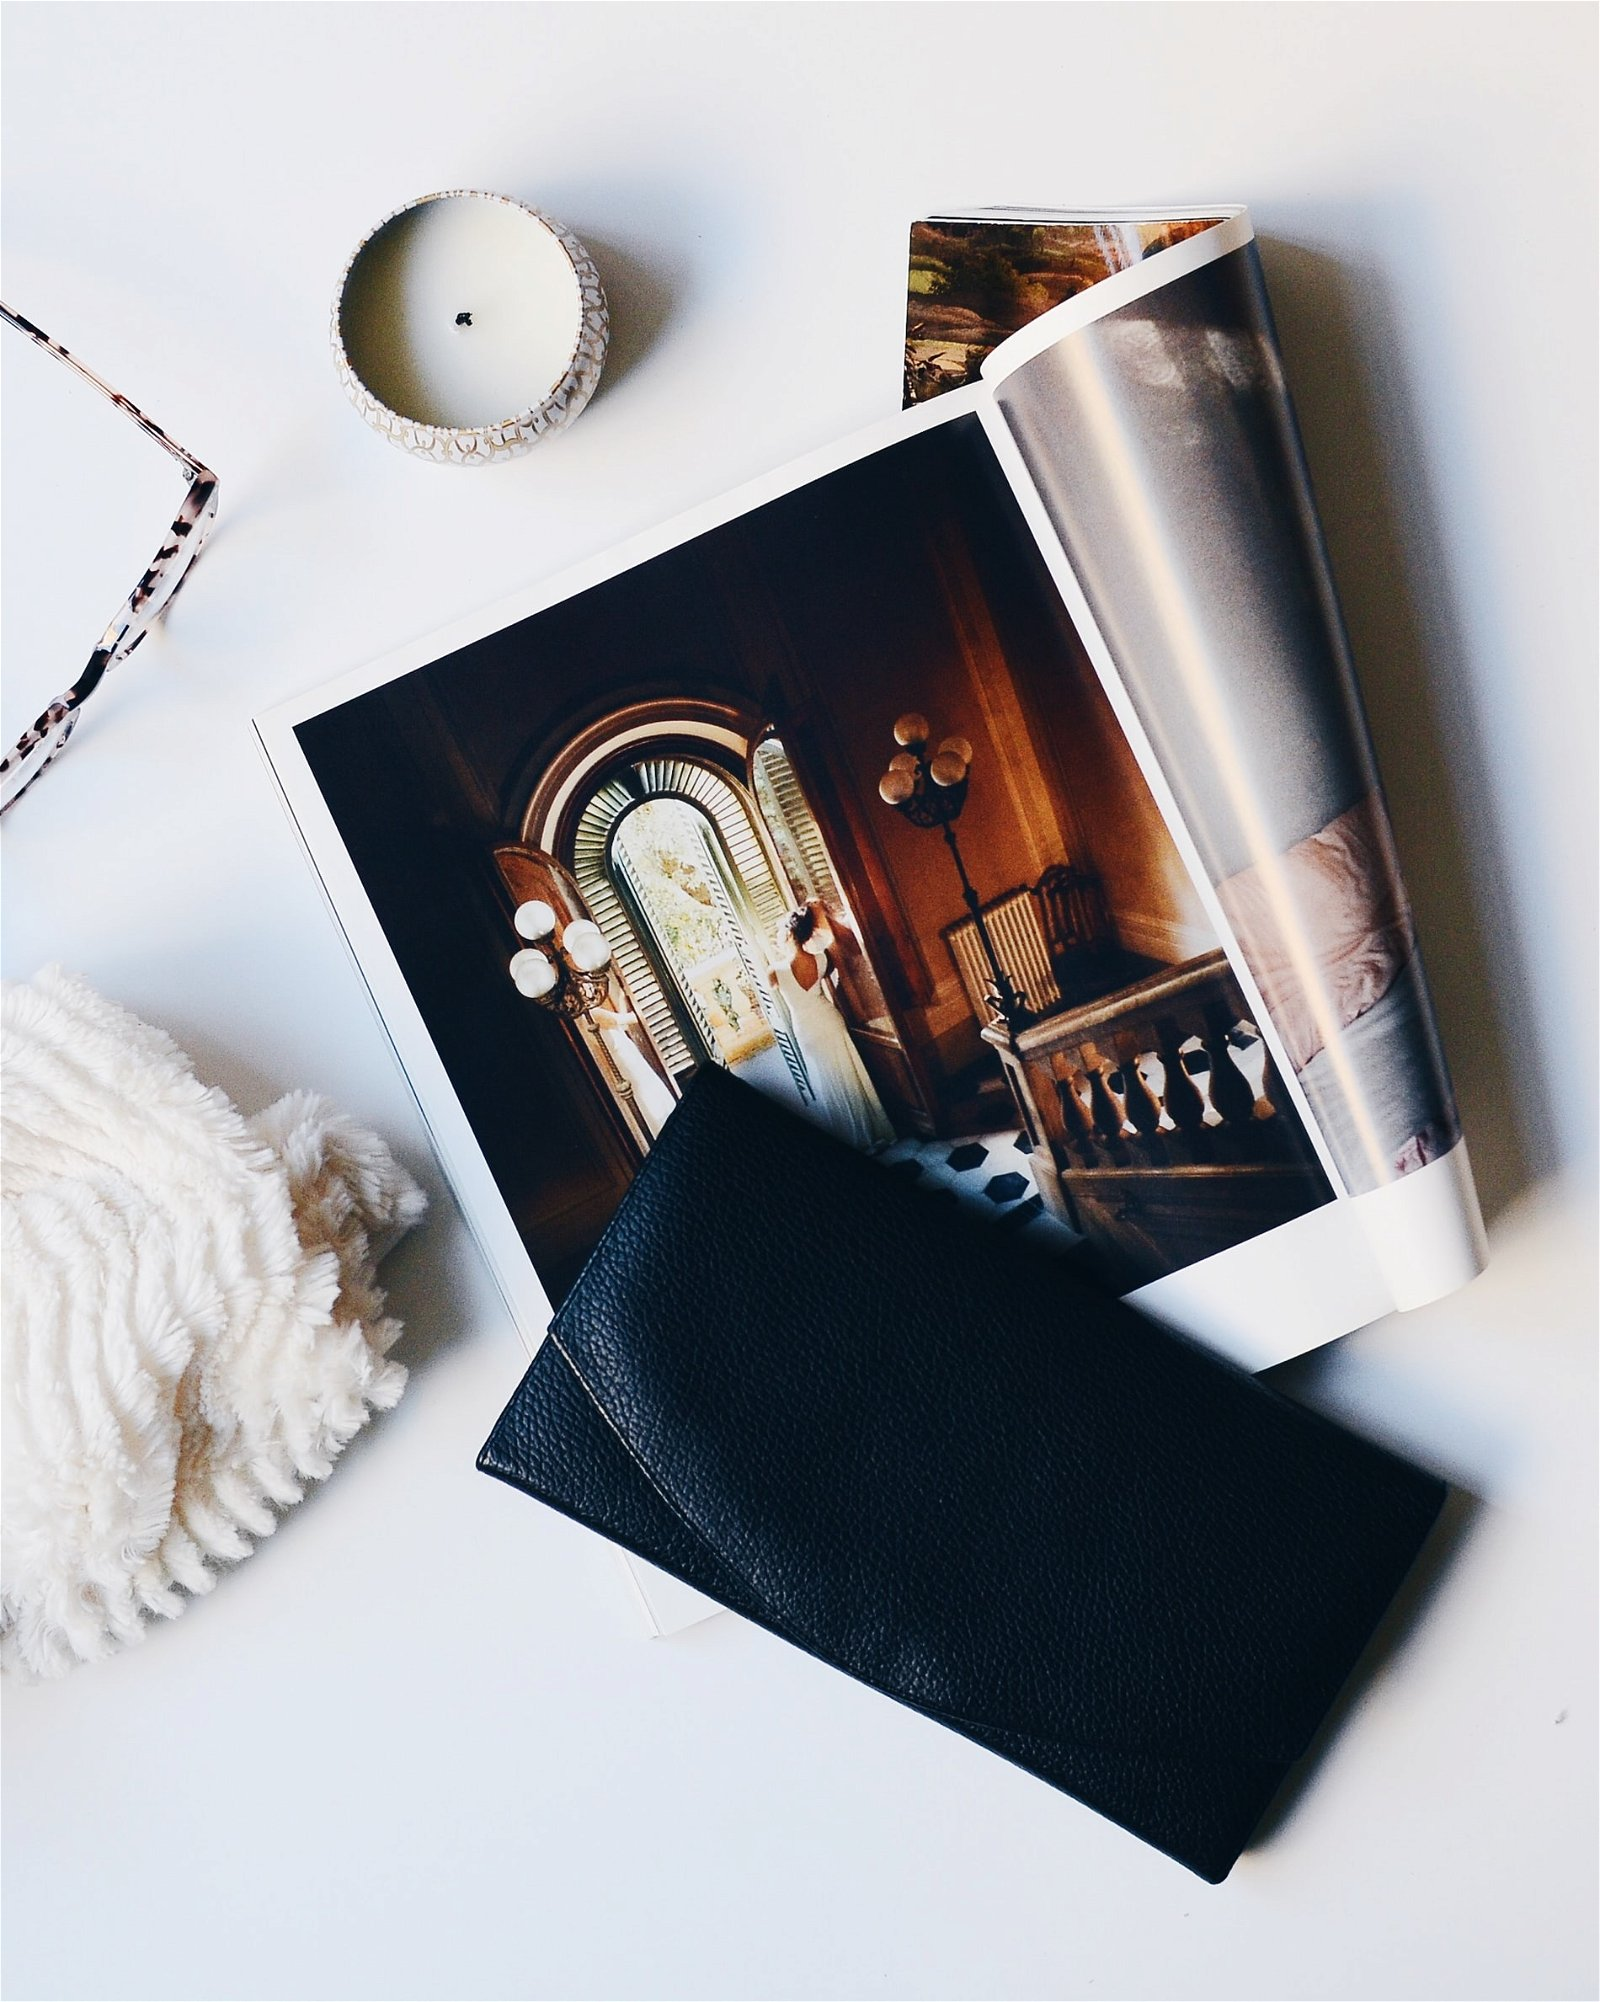 Editorial image of a magazine open with lifestyle accessories on a white surface